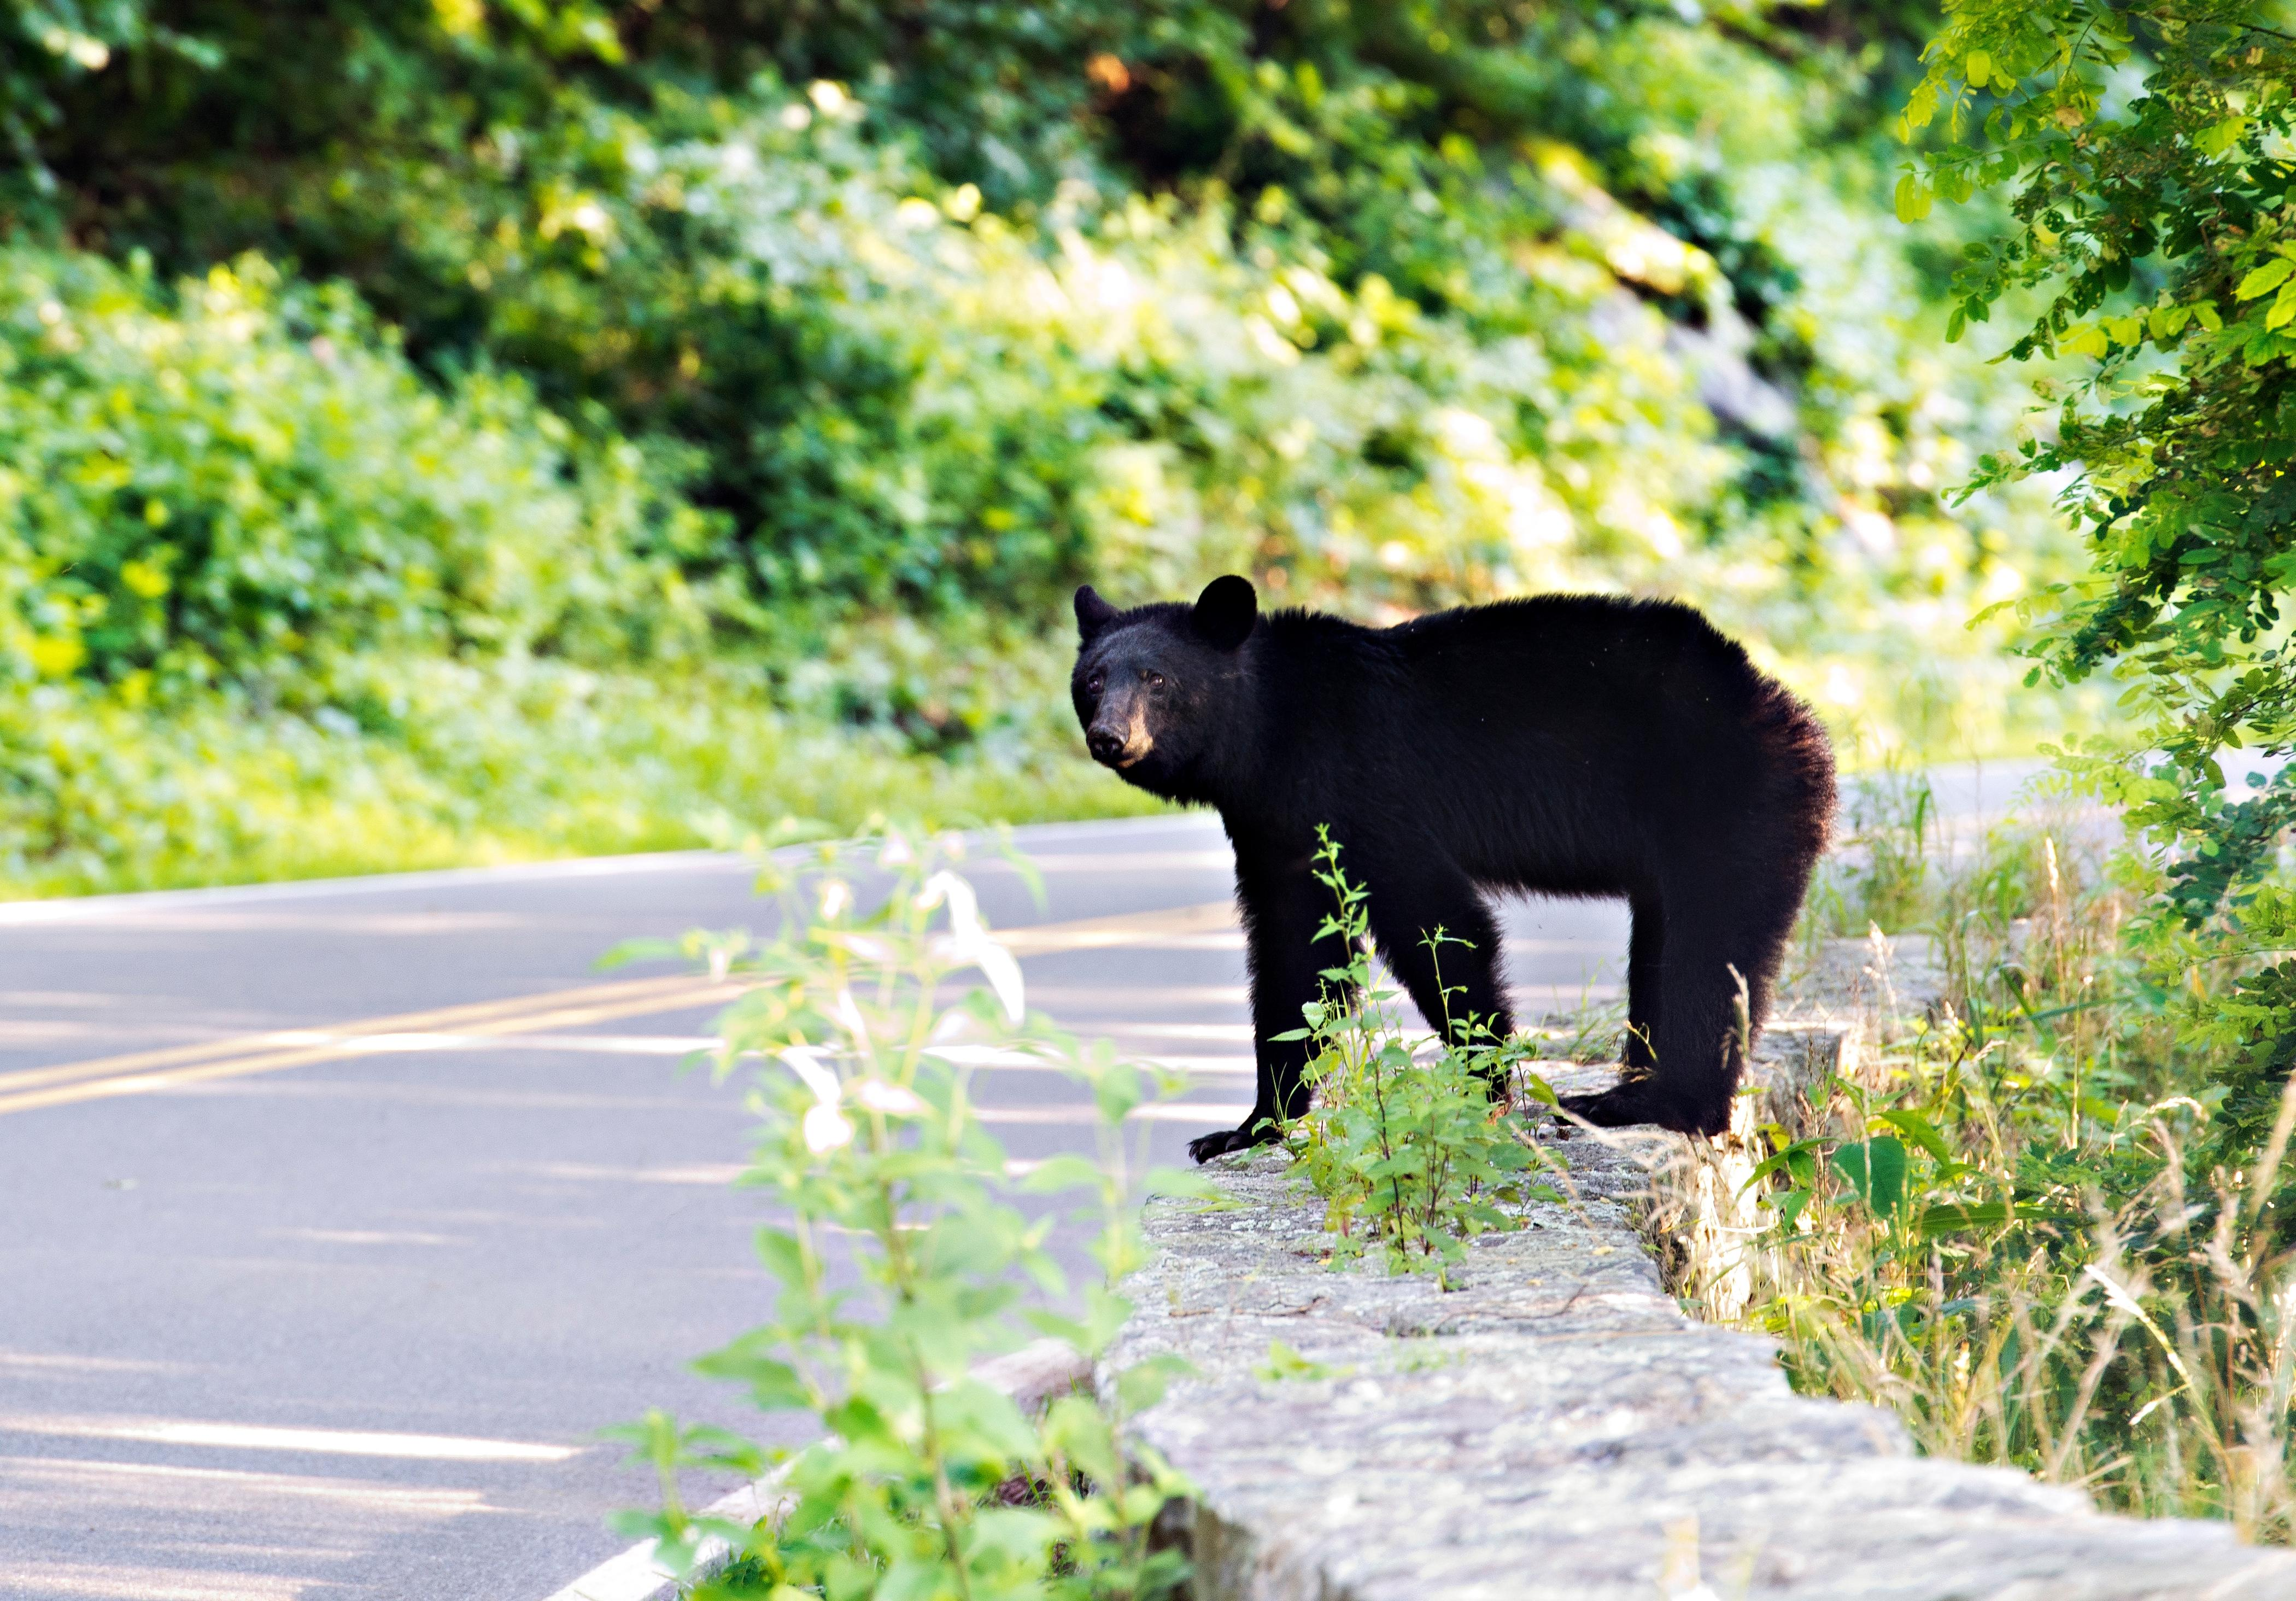 There are hundreds of black bears roaming the park. You might see one ambling across the road, gorging in the midst of a blackberry patch or loping through a campsite.{ }(File photo)